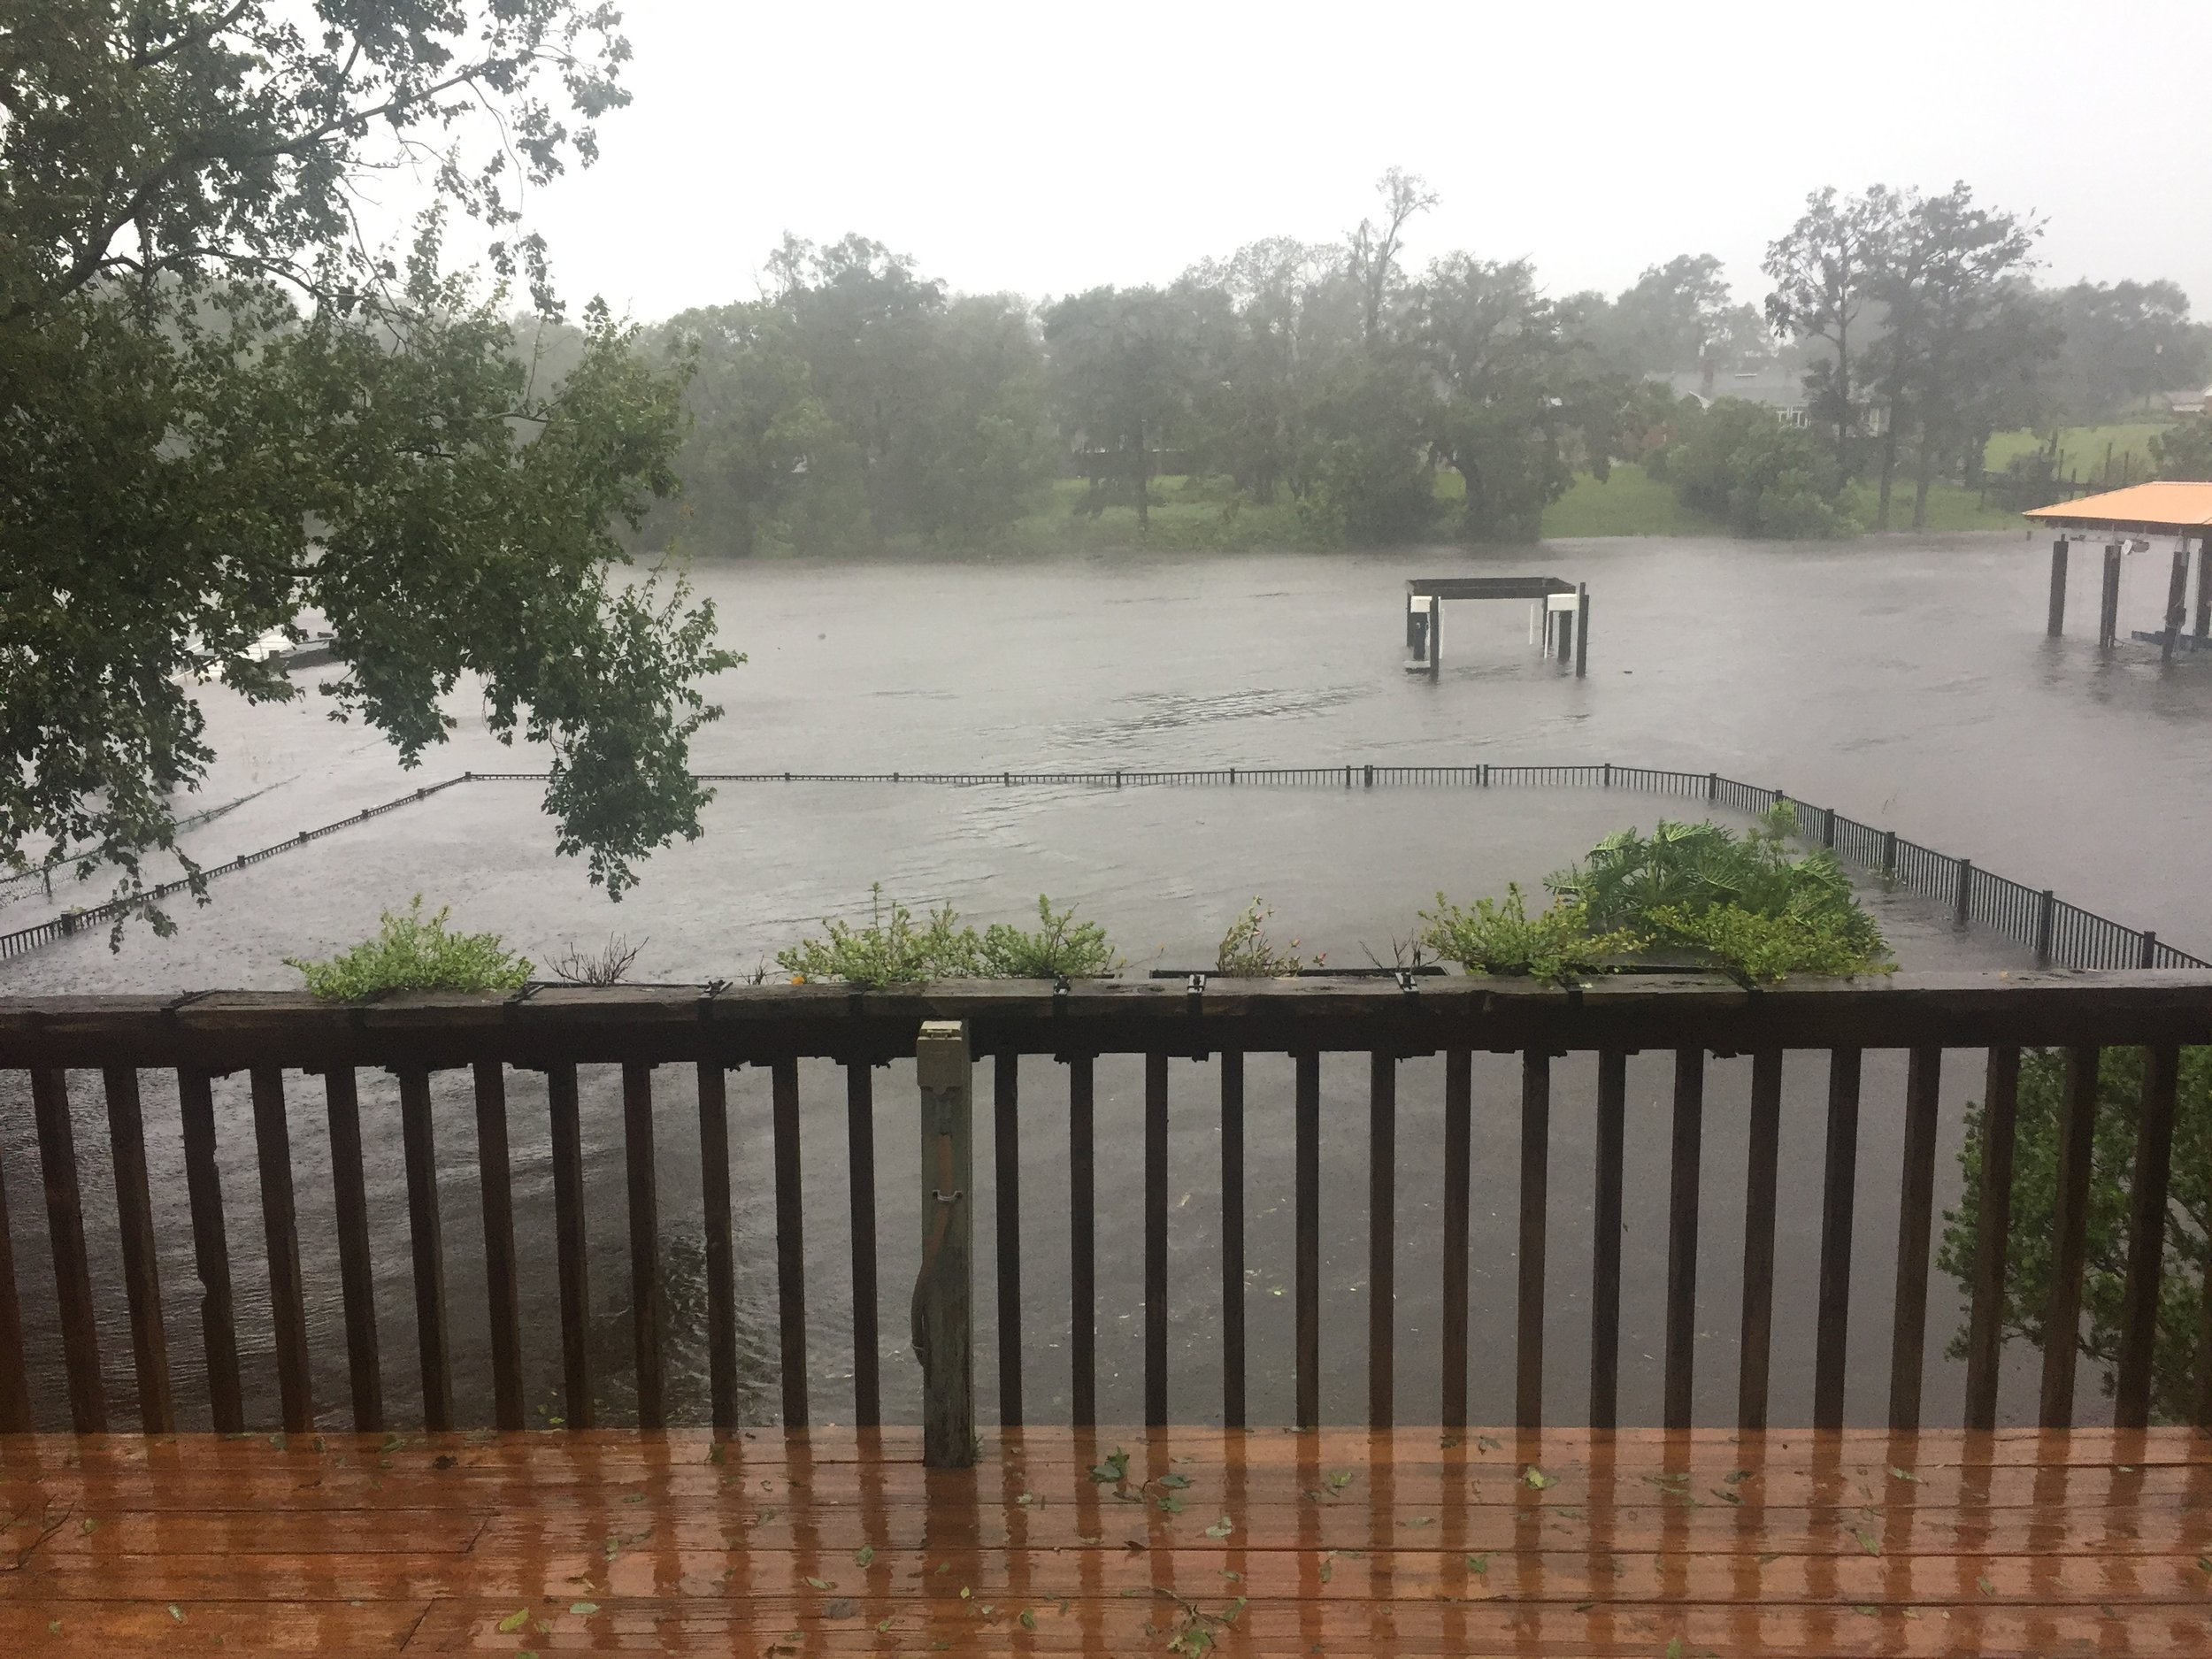 What our backyard looked like when we evacuated (it got about another 8 inches higher after that)